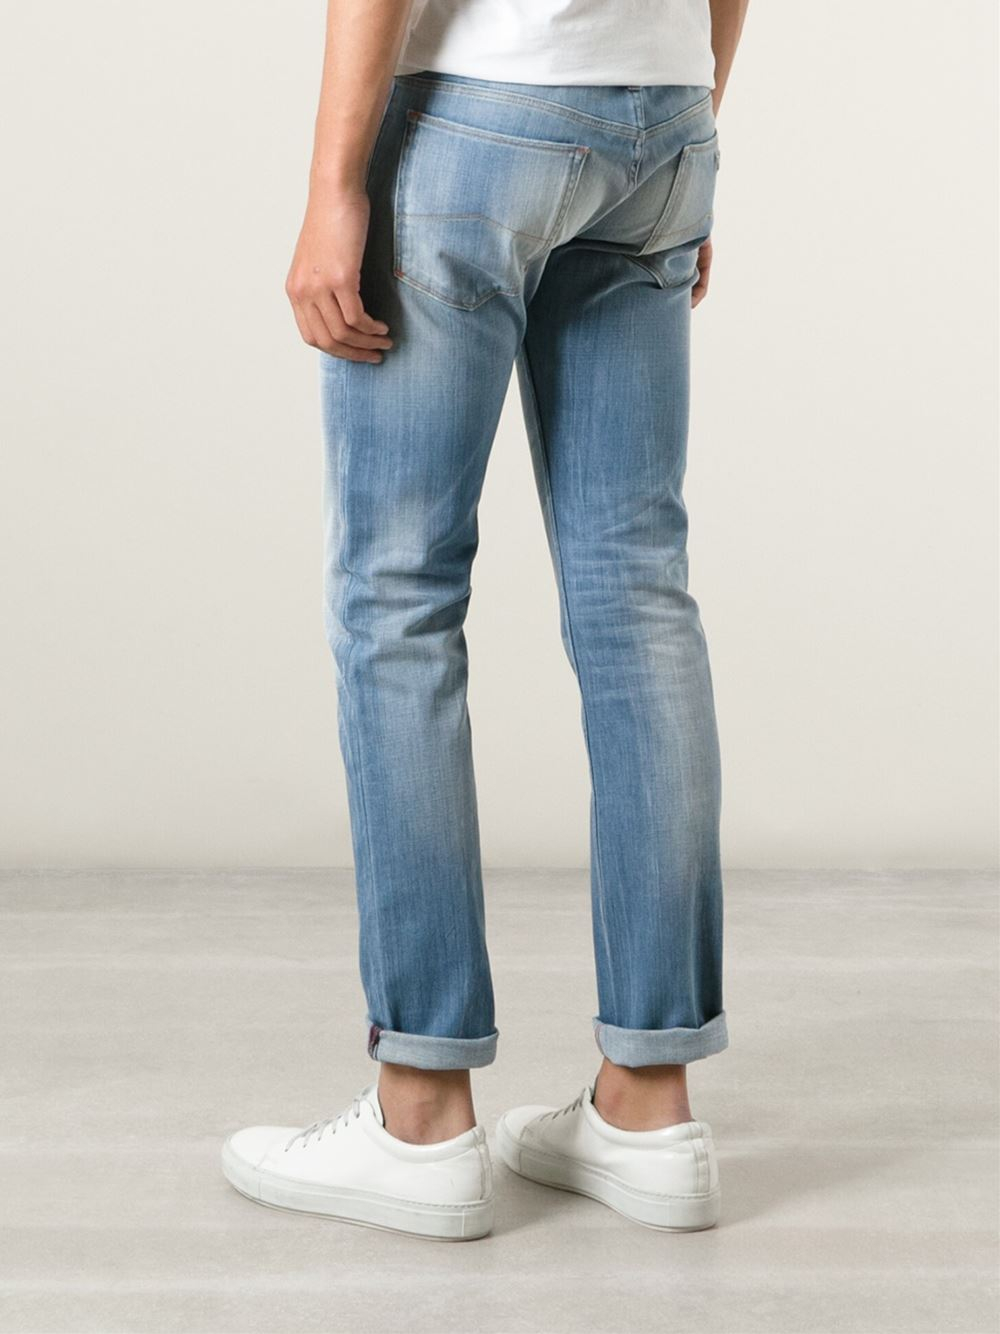 Men Skinny Jeans With Boots